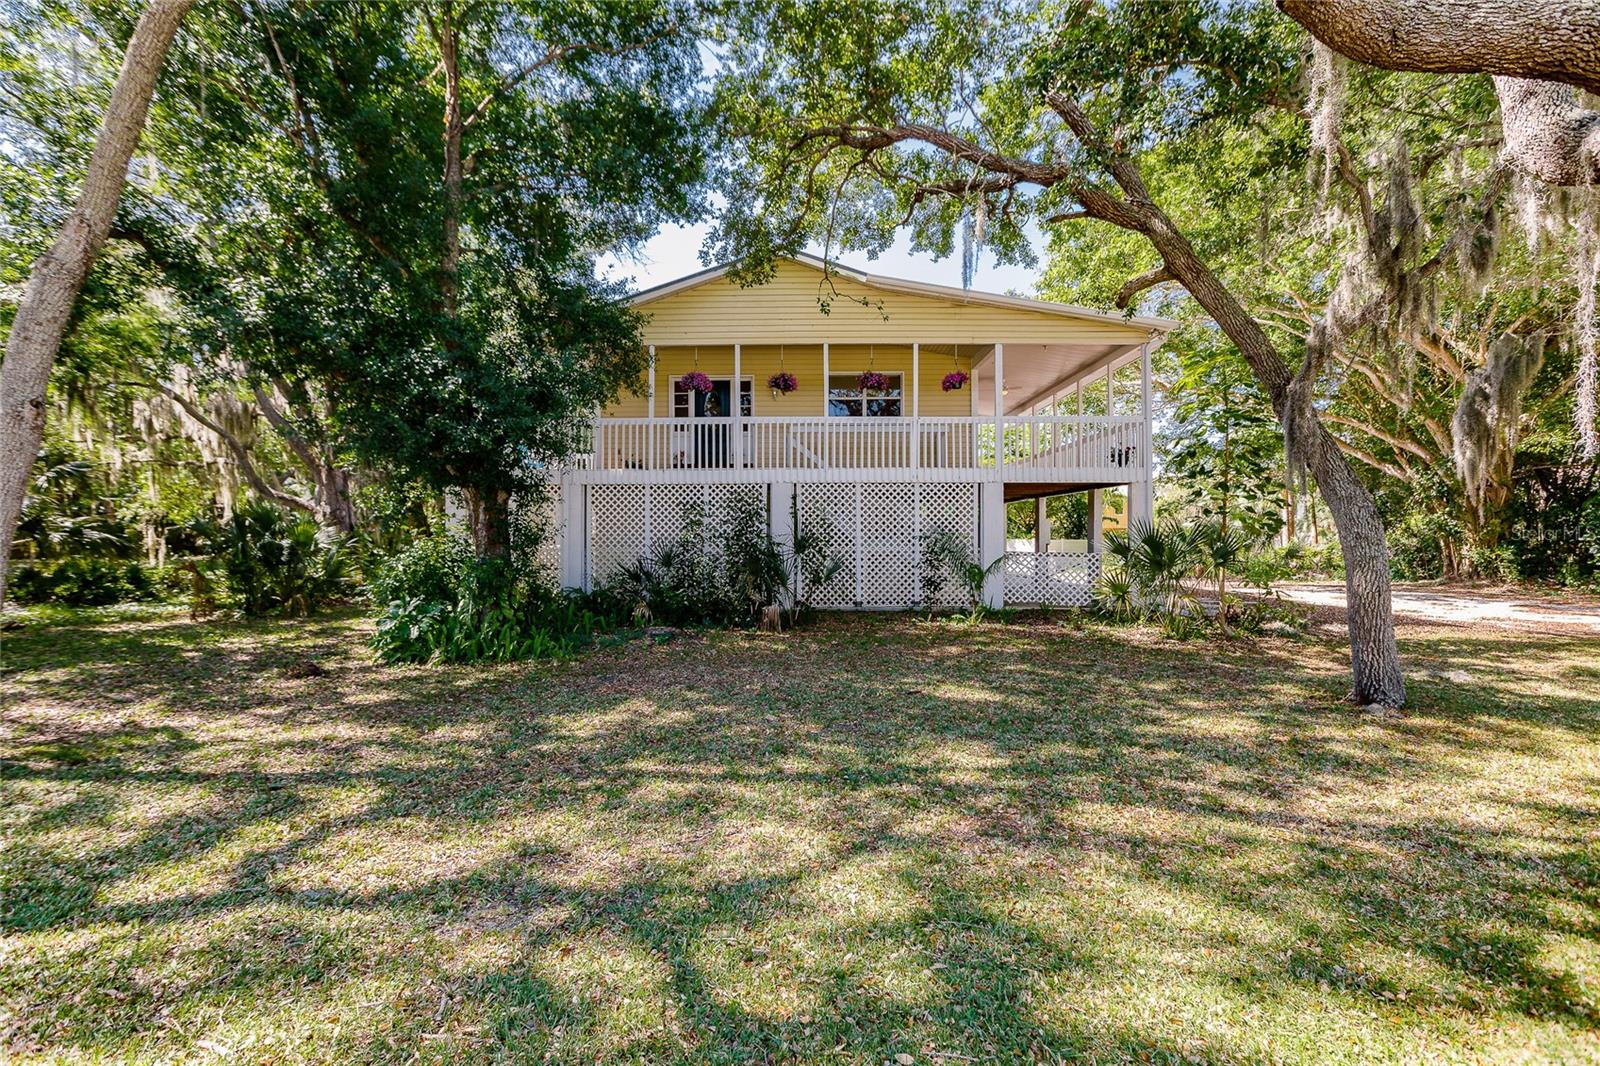 Almost 1/2 acre lot with lots of privacy in a park like setting. Enjoy the Florida lifestyle here with room for all your toys! - Single Family Home for sale at 7811 27th Ave W, Bradenton, FL 34209 - MLS Number is A4499385